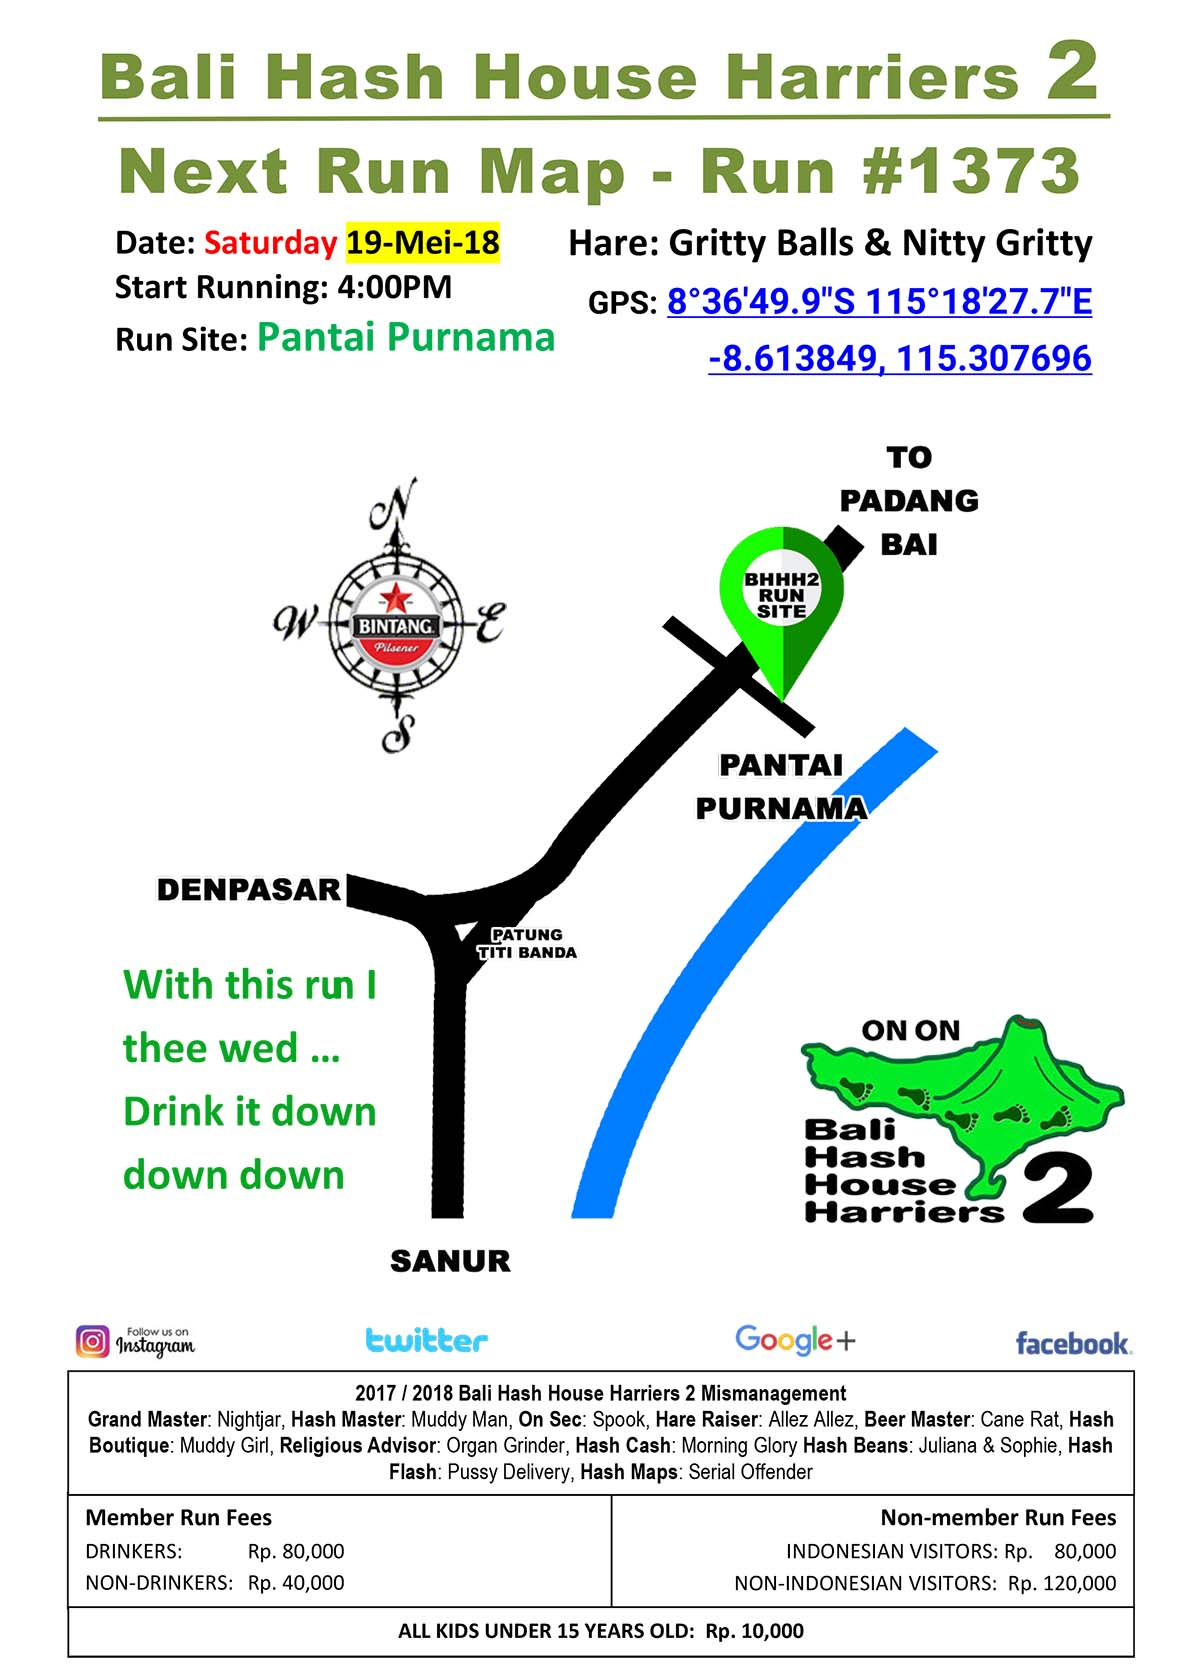 BHHH2 Next Run Map #1373 Pantai Purnama Bali hash 2